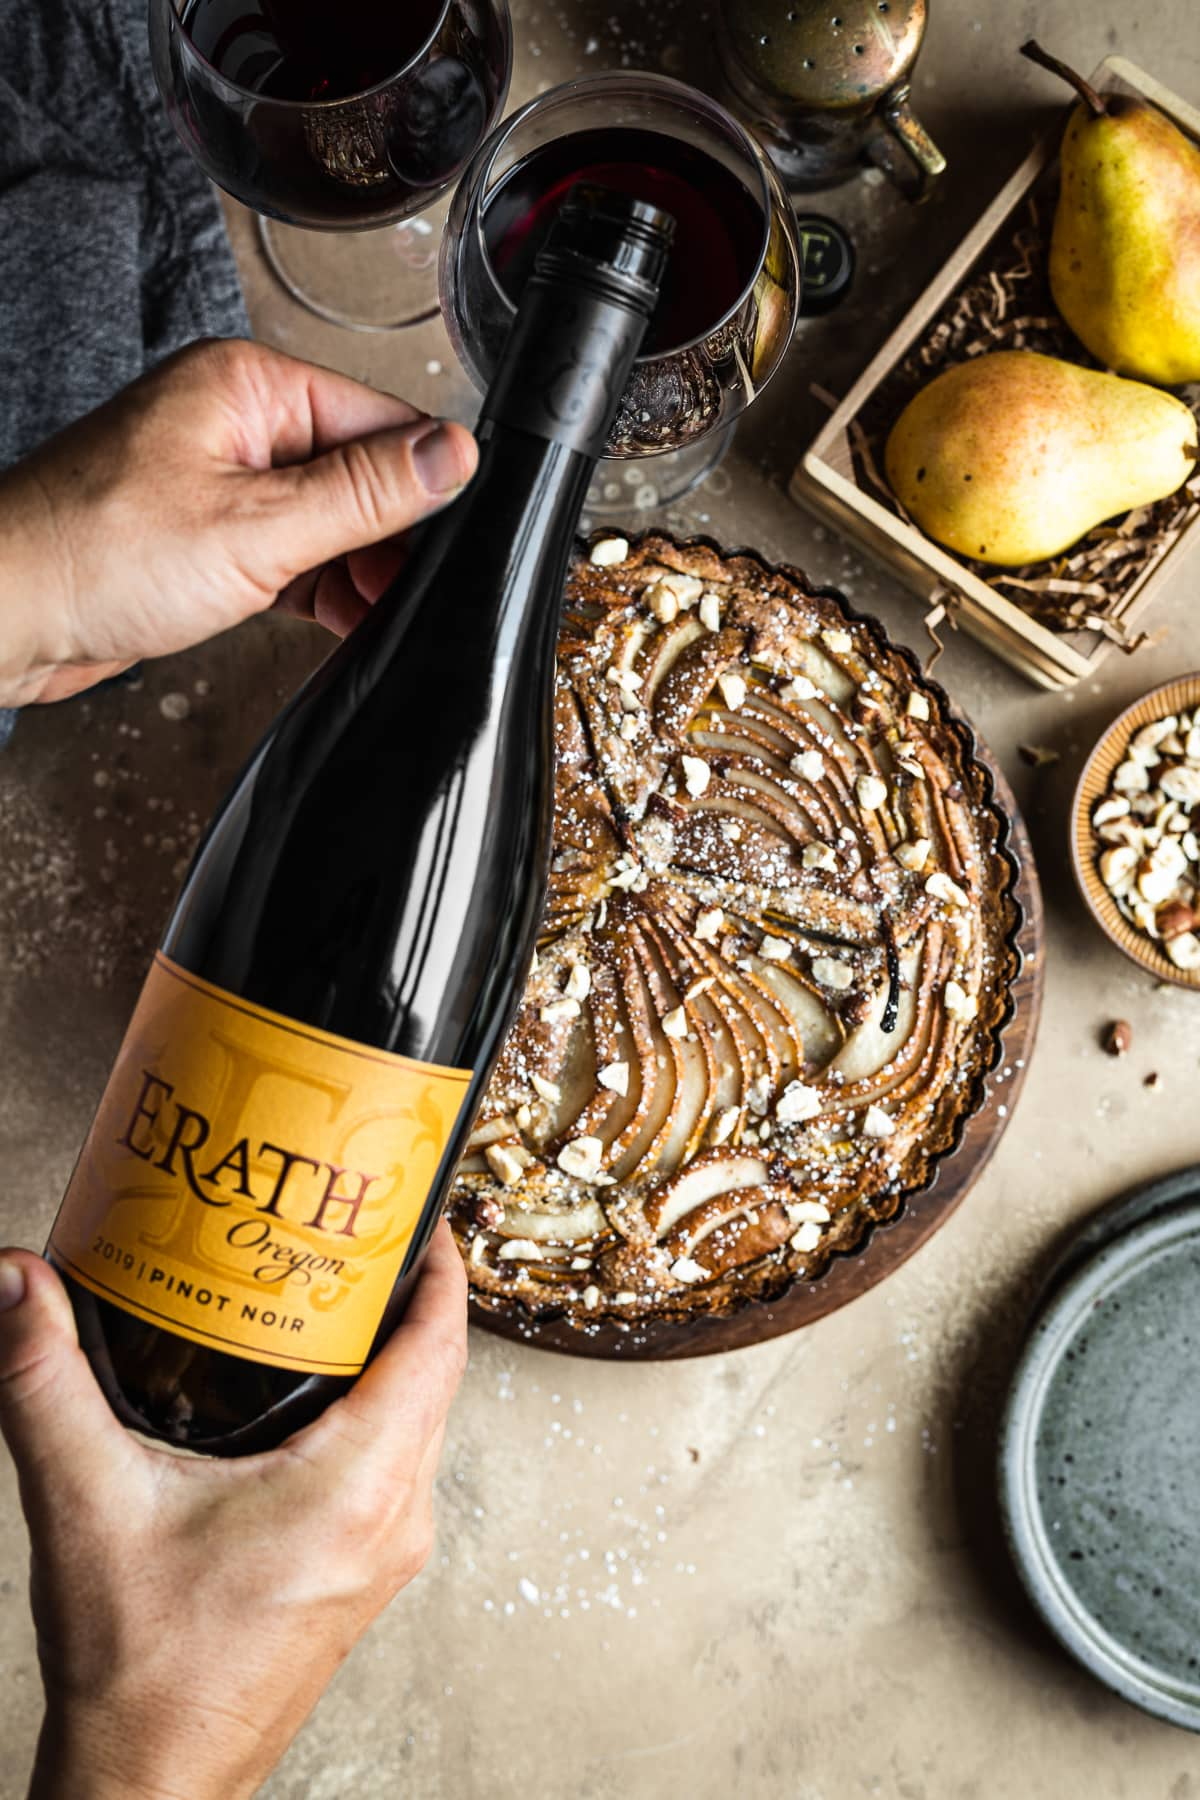 Hands pouring a bottle of red wine into glasses with a golden brown pear tart in the background. Surrounding the tart are speckled blue ceramic plates, a bowl of chopped hazelnuts, pears in a wooden crate, and a linen napkin. Everything rests on a textured tan background.